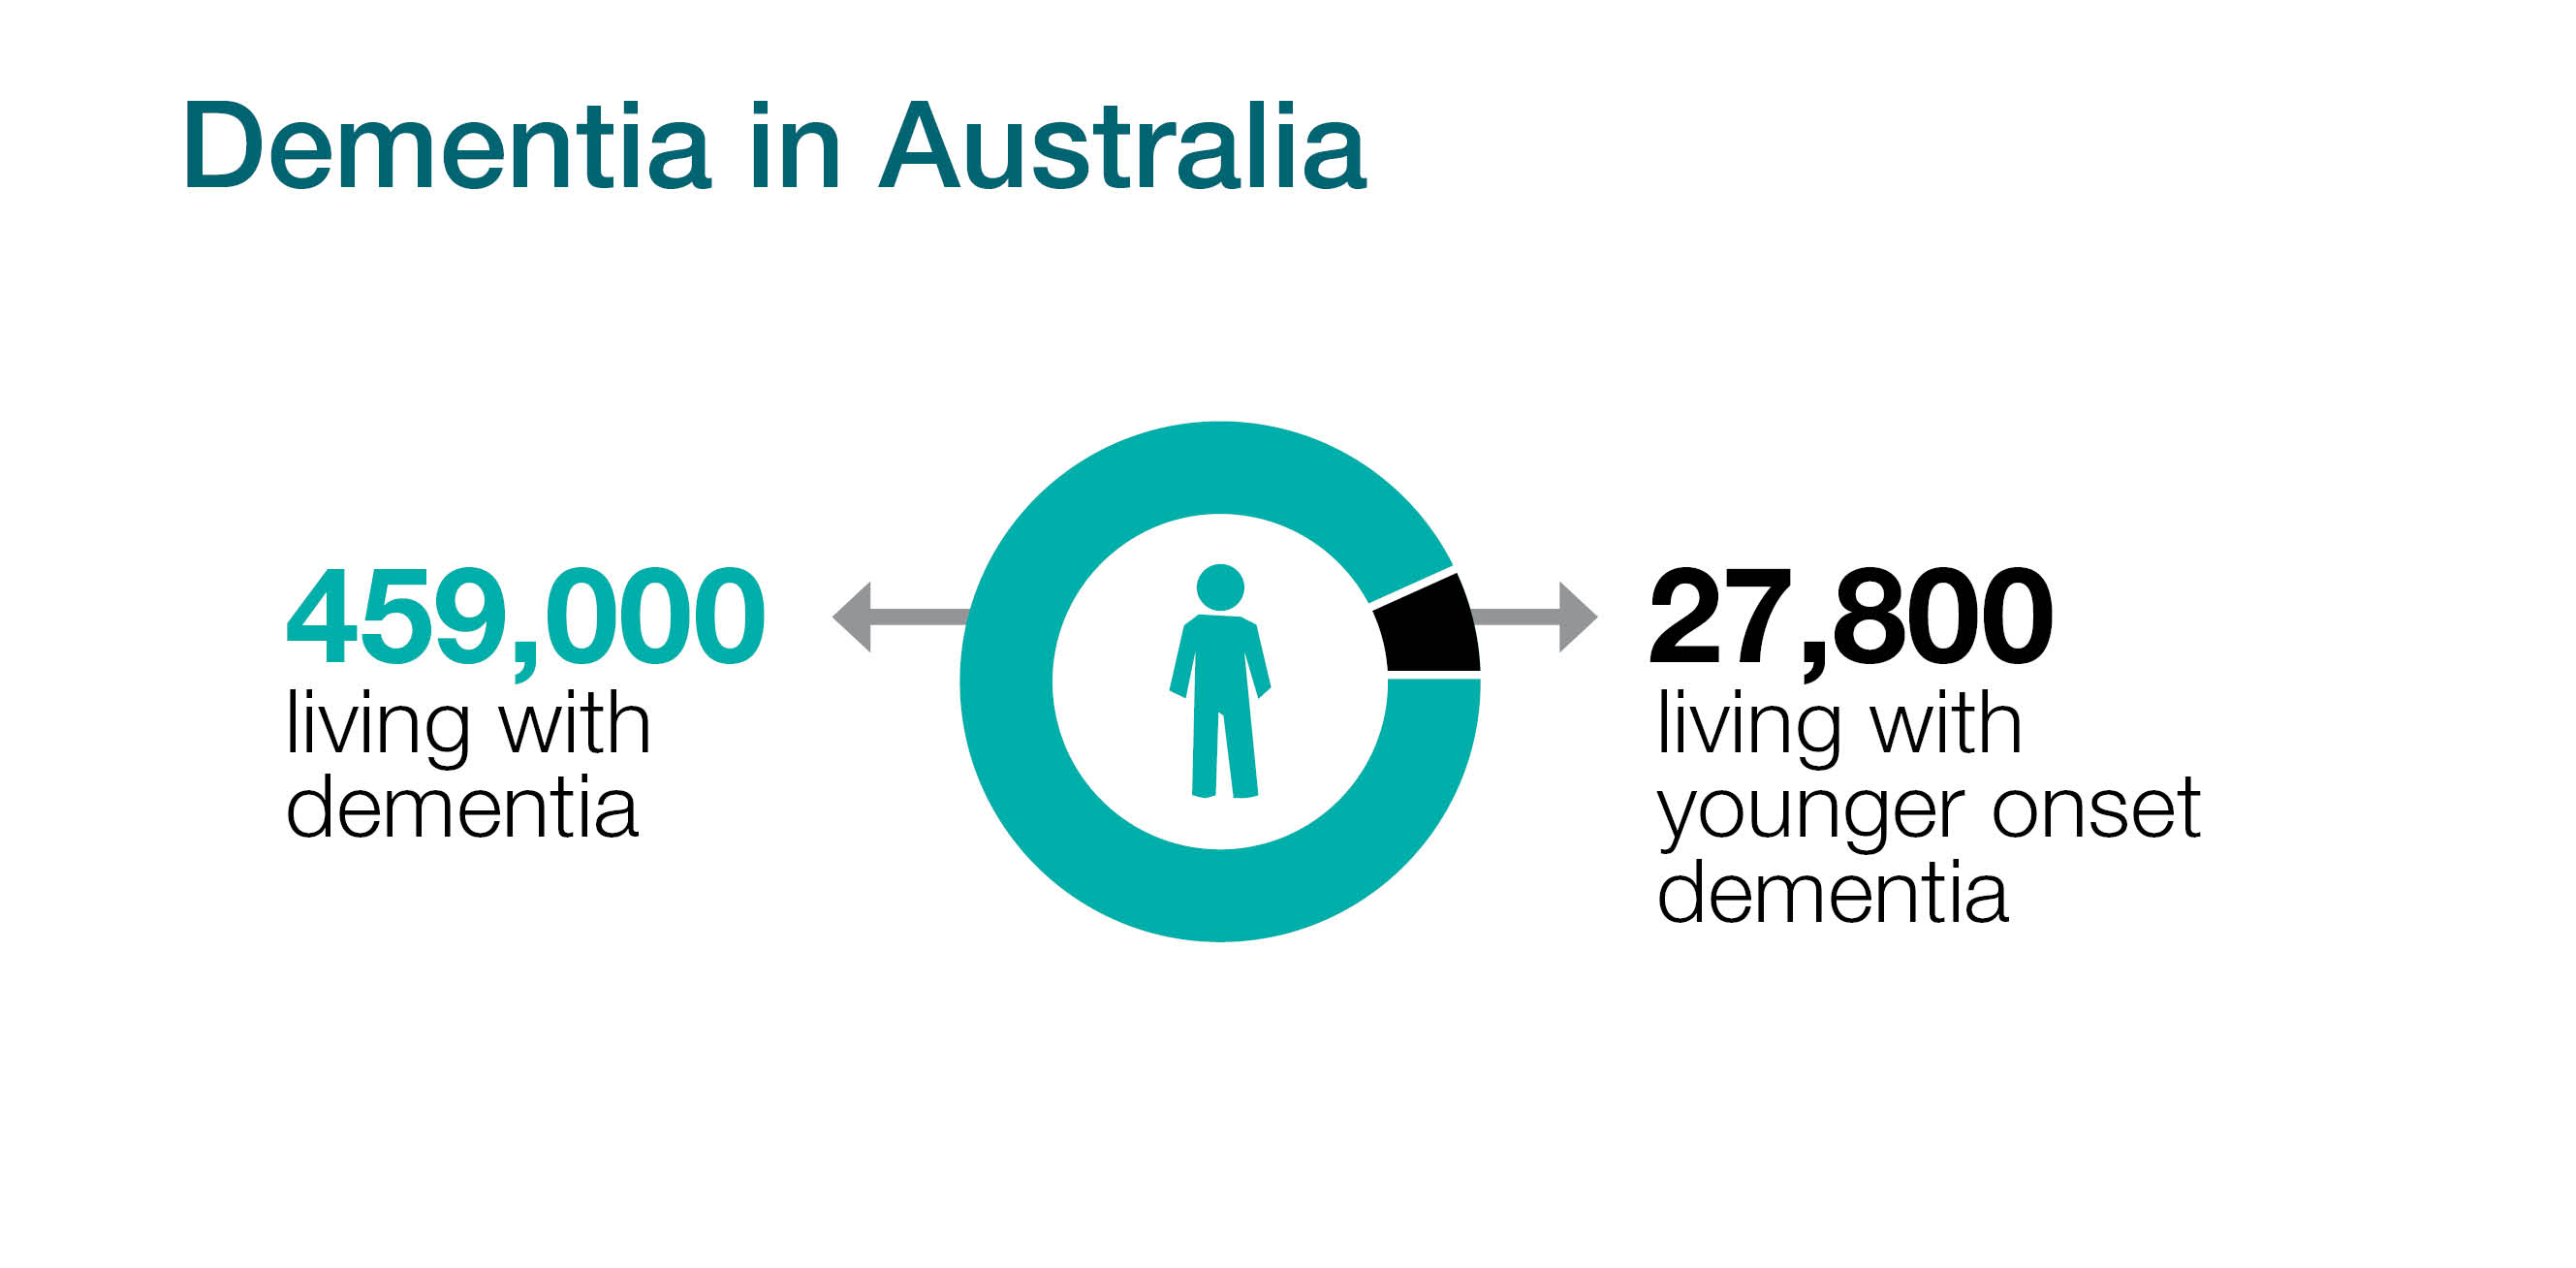 Dementia Australia, 459,00 people living with Dementia, 27,800 living with Younger Onset Dementia